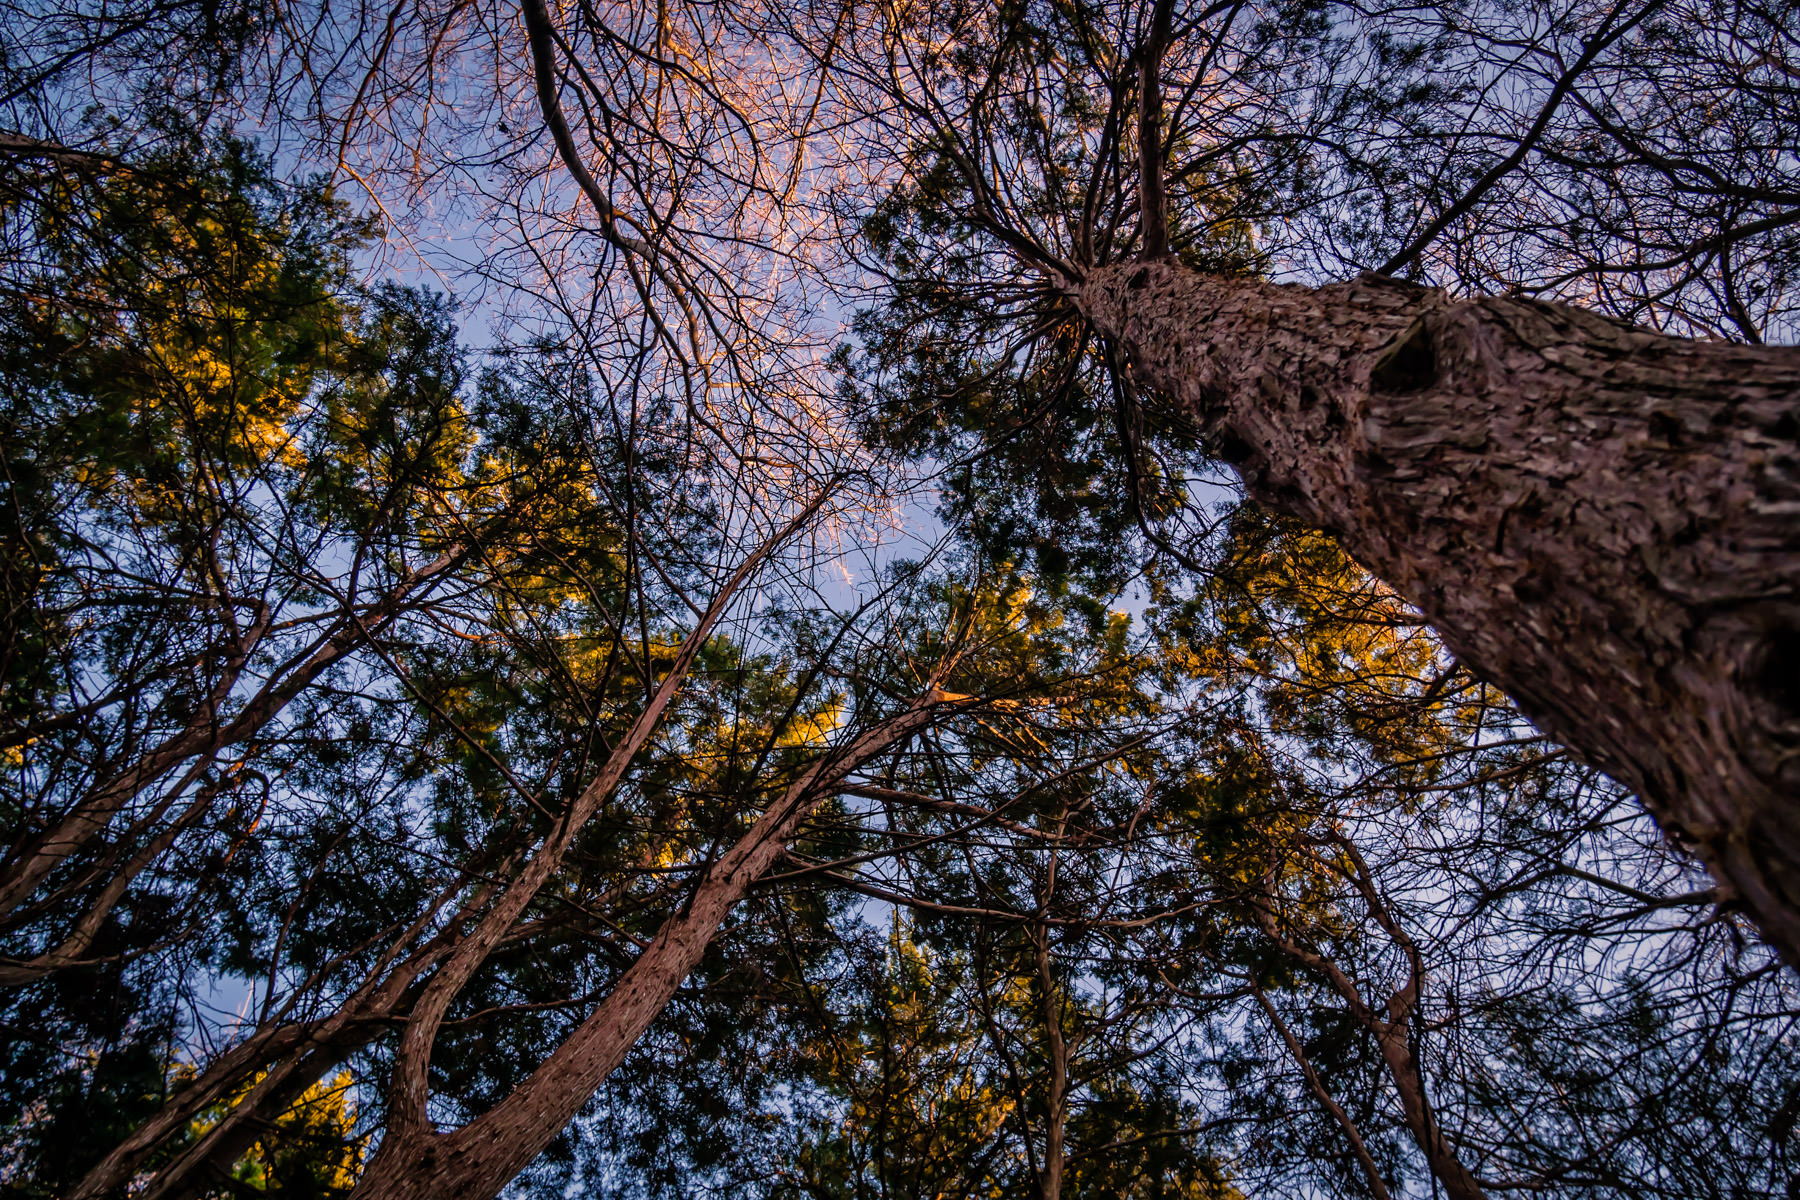 Trees reach for the sky as the sun begins to set on Addison, Texas' Bosque Park.